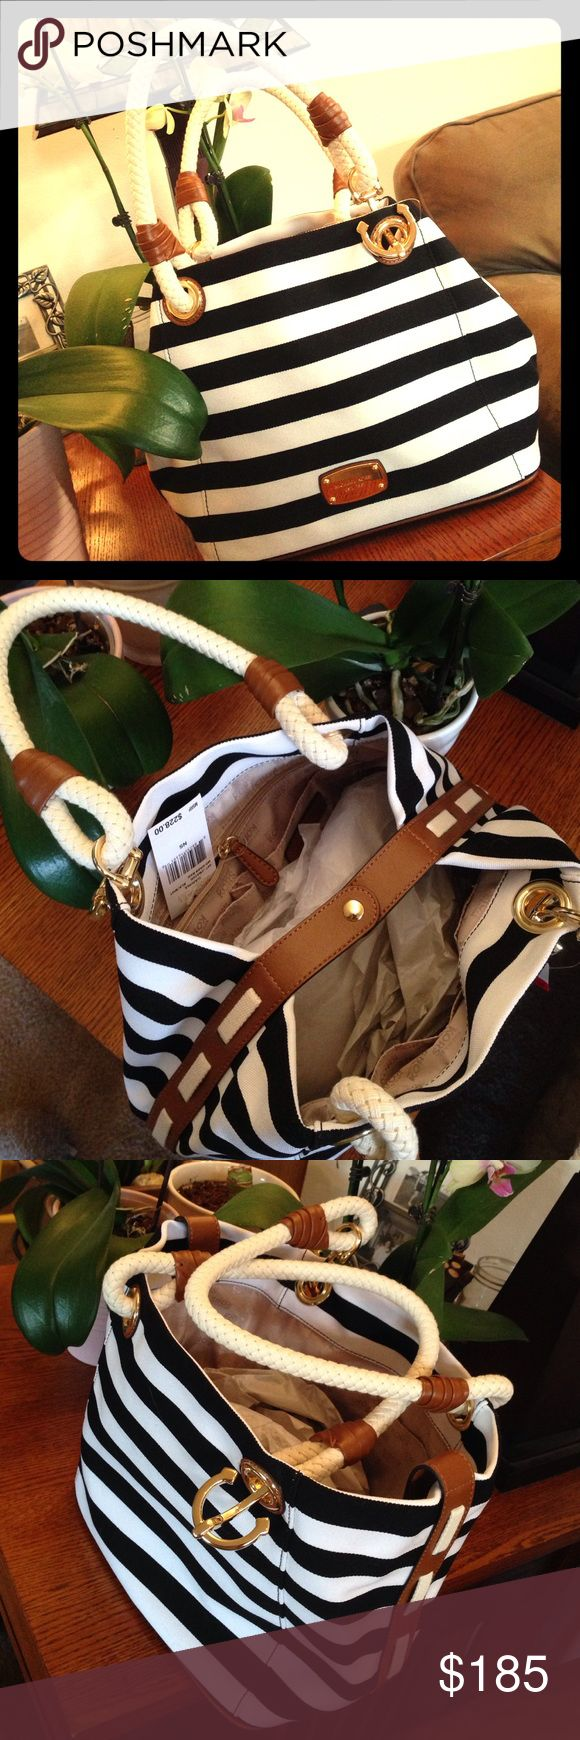 Micheal Kors Canvas Marina grab bag Micheal Kors black and white striped canvas grab bag with brown leather trim. NWT. Beautiful summer purse!! Any questions just ask!!! Michael Kors Bags Shoulder Bags